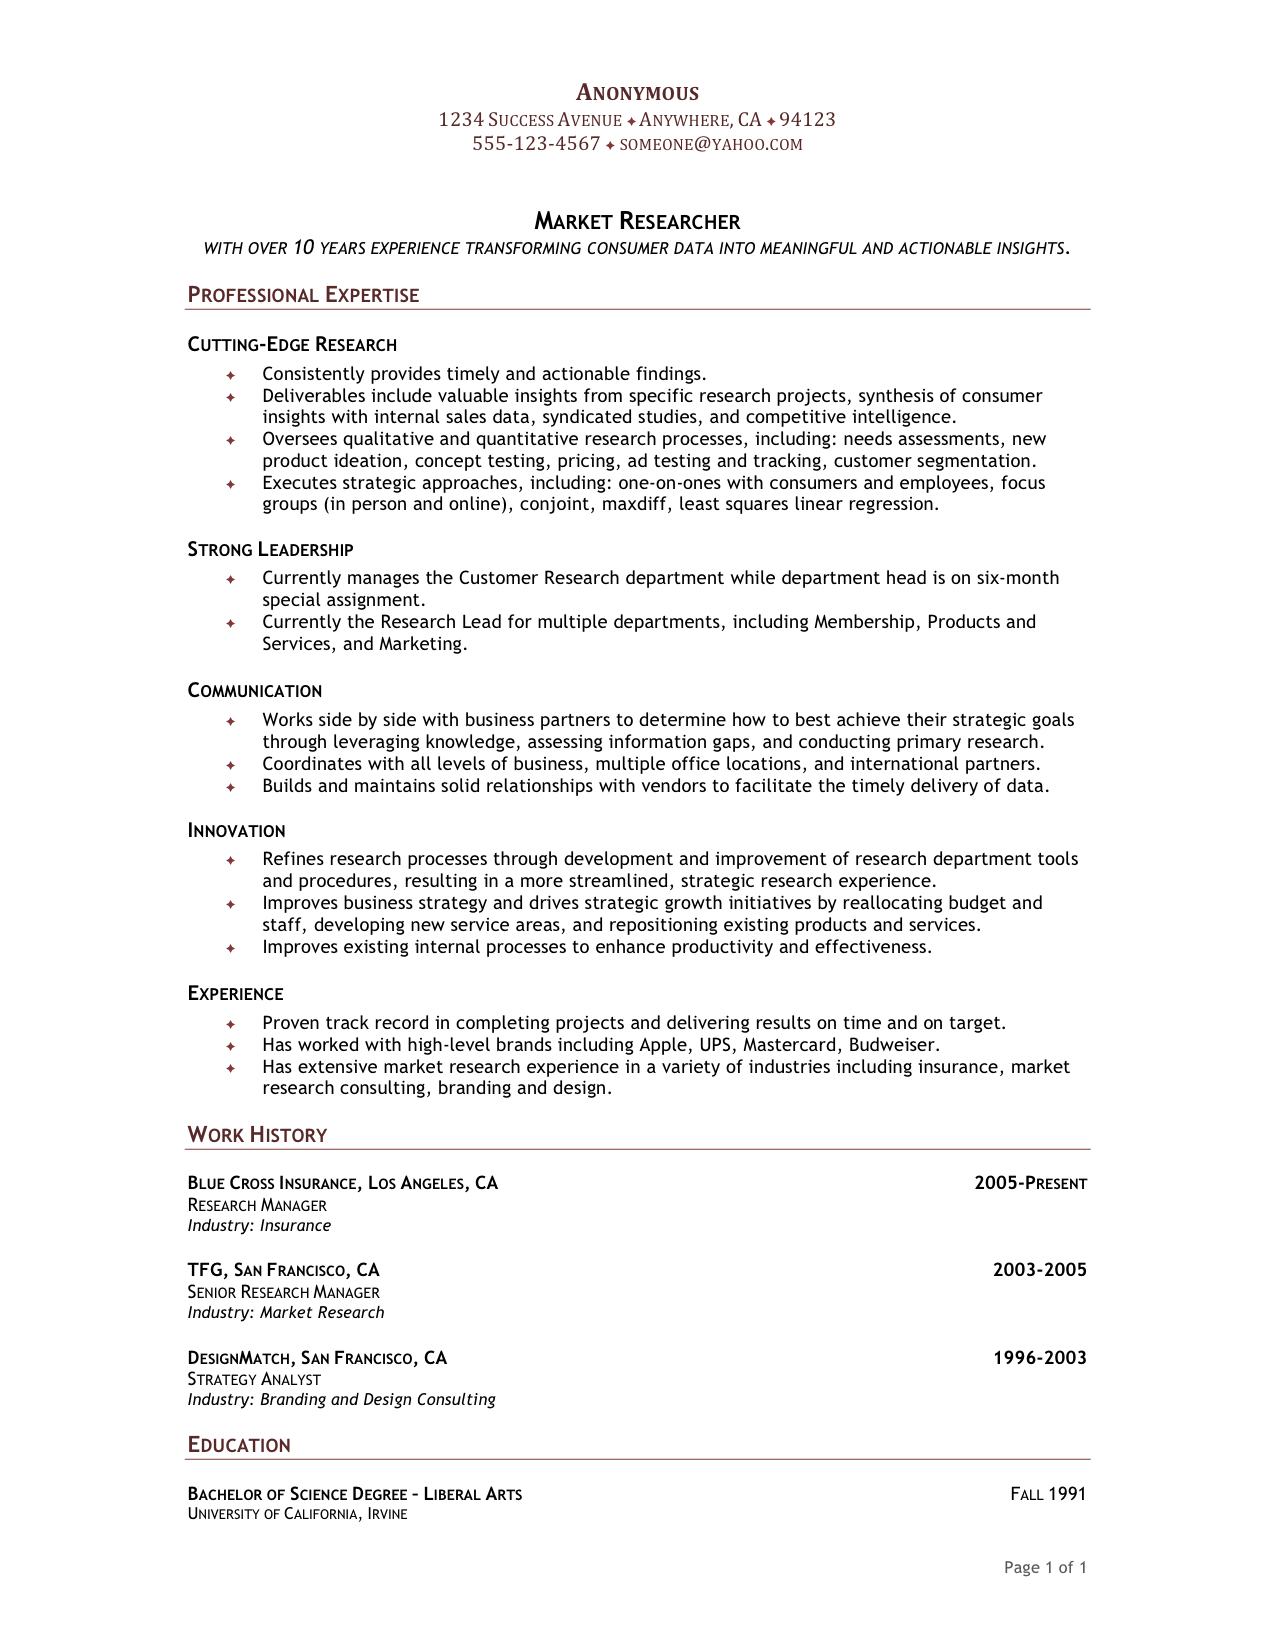 fundamentals of a good chronological resume chronological resume traditional design templates resume sample sample resume good job resume exle fundamentals of